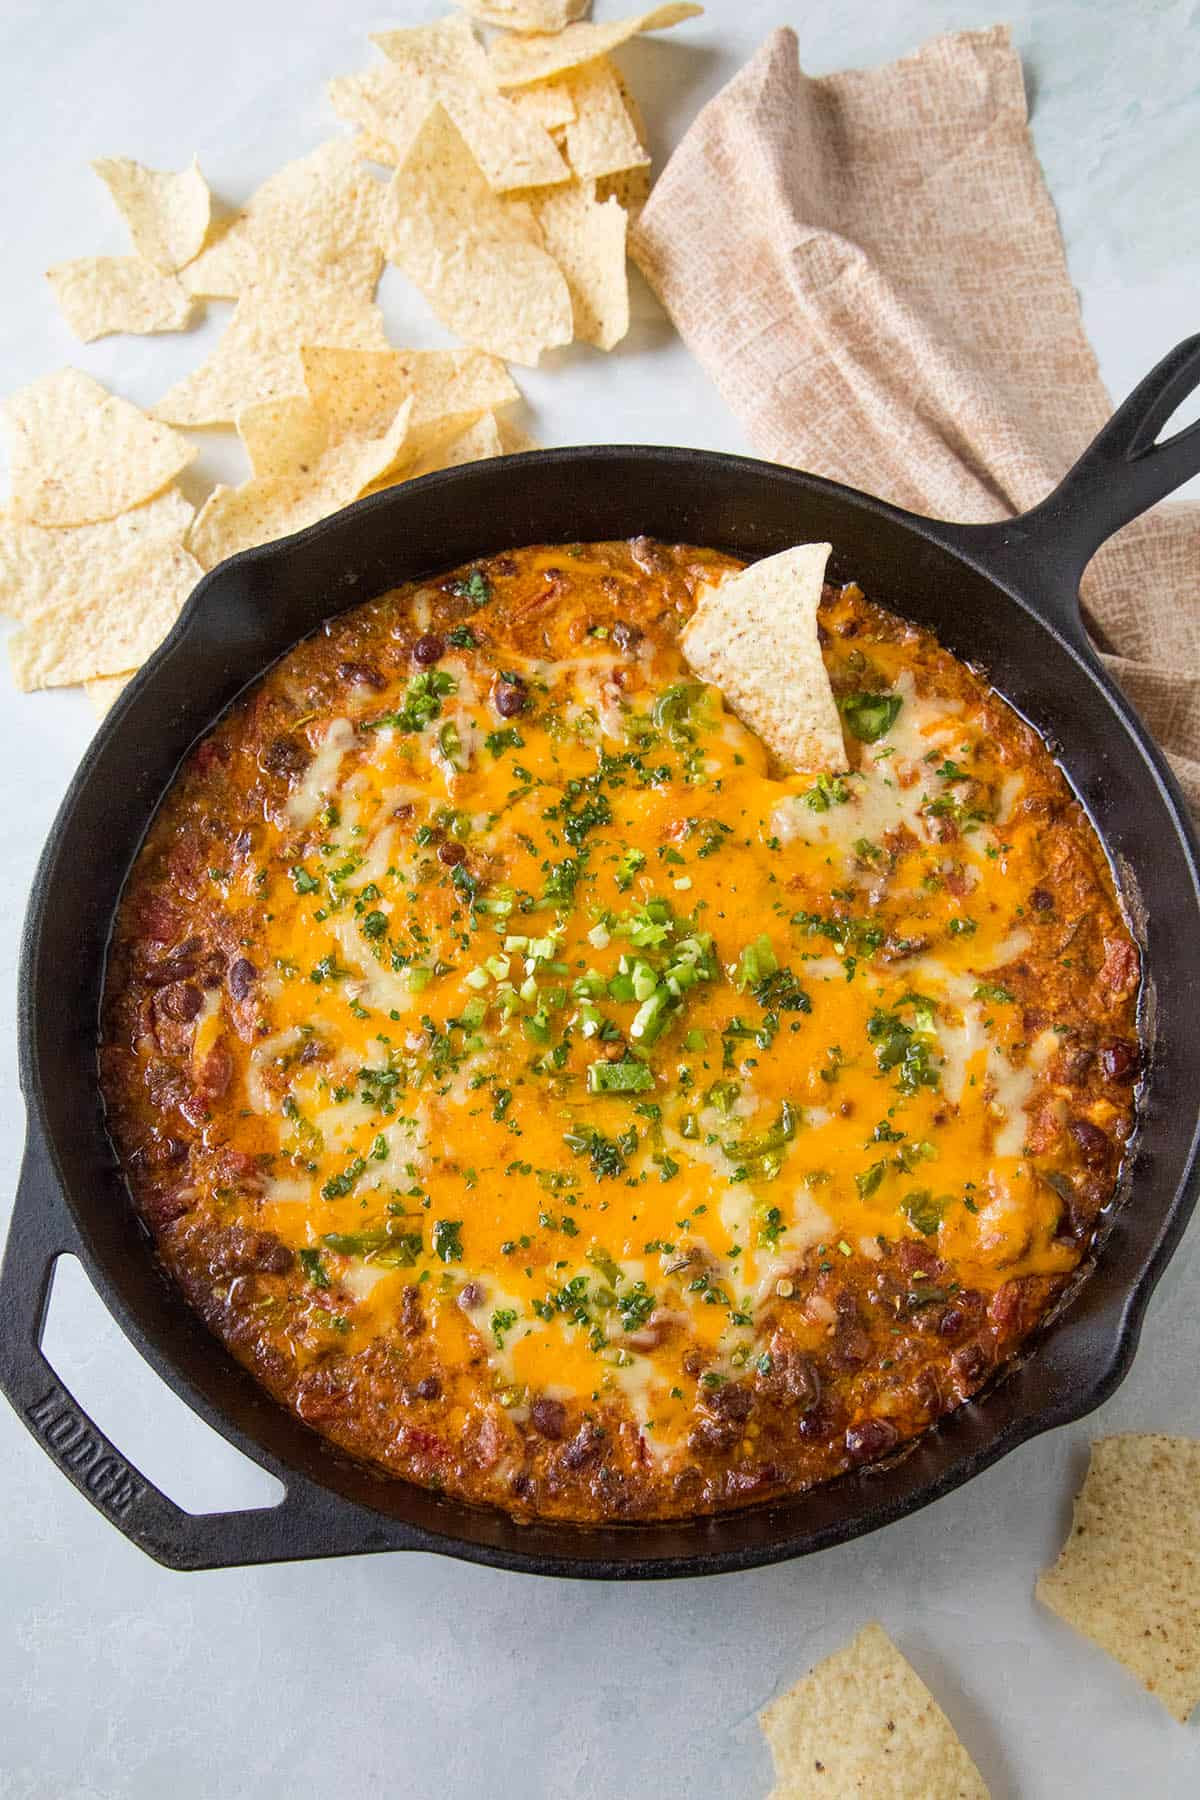 Chili Cheese Dip in a pan, ready to eat